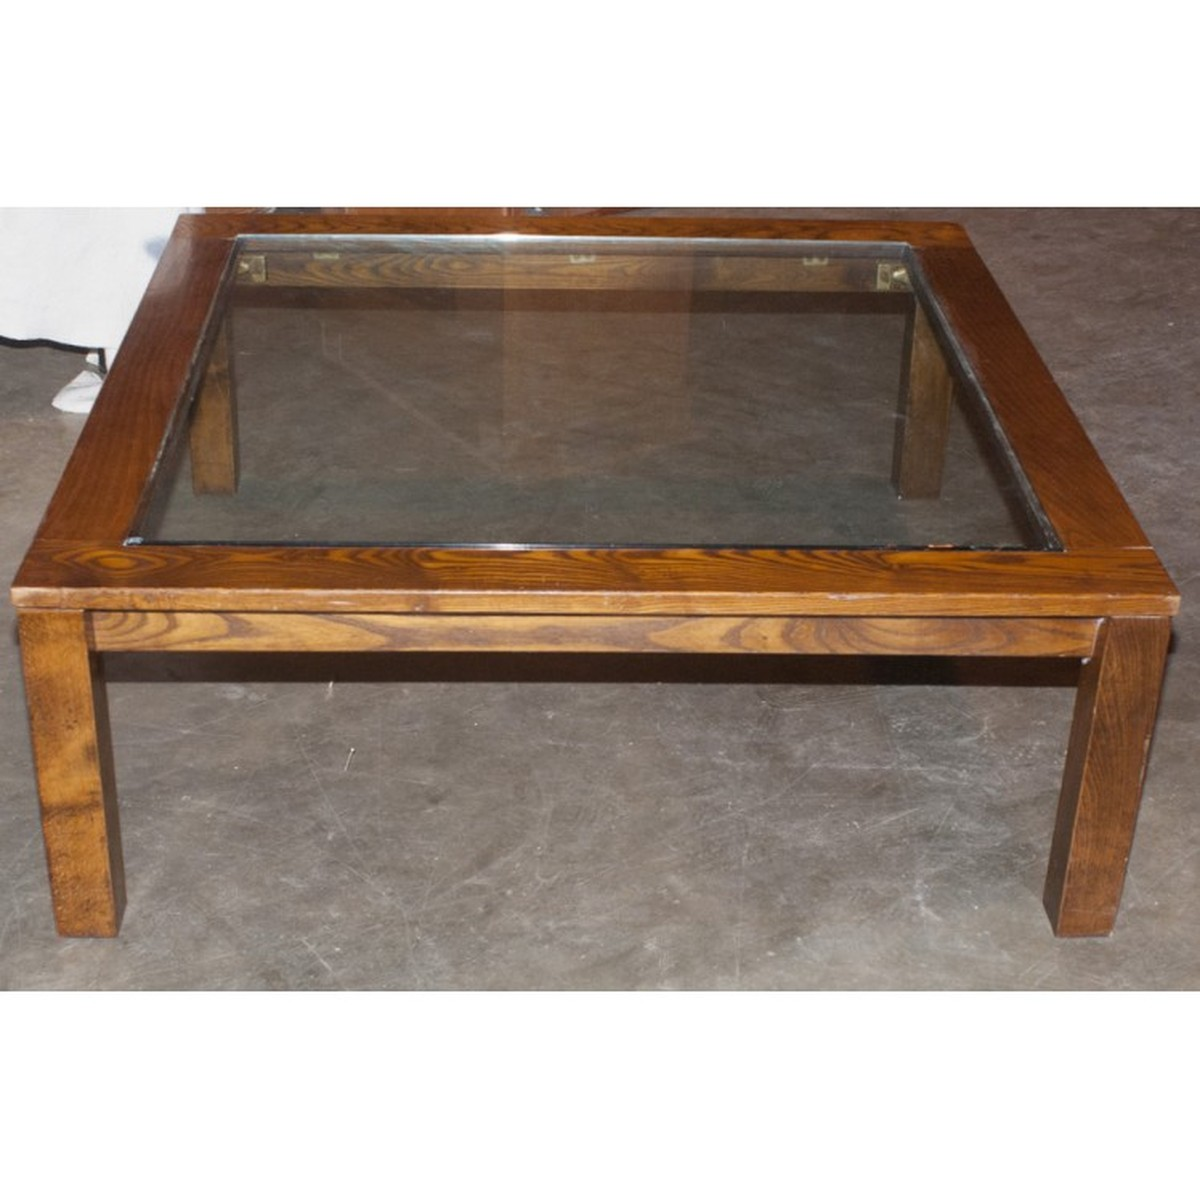 Glass Top Coffee Tables For Sale Secondhand Chairs And Tables Lounge Furniture Large